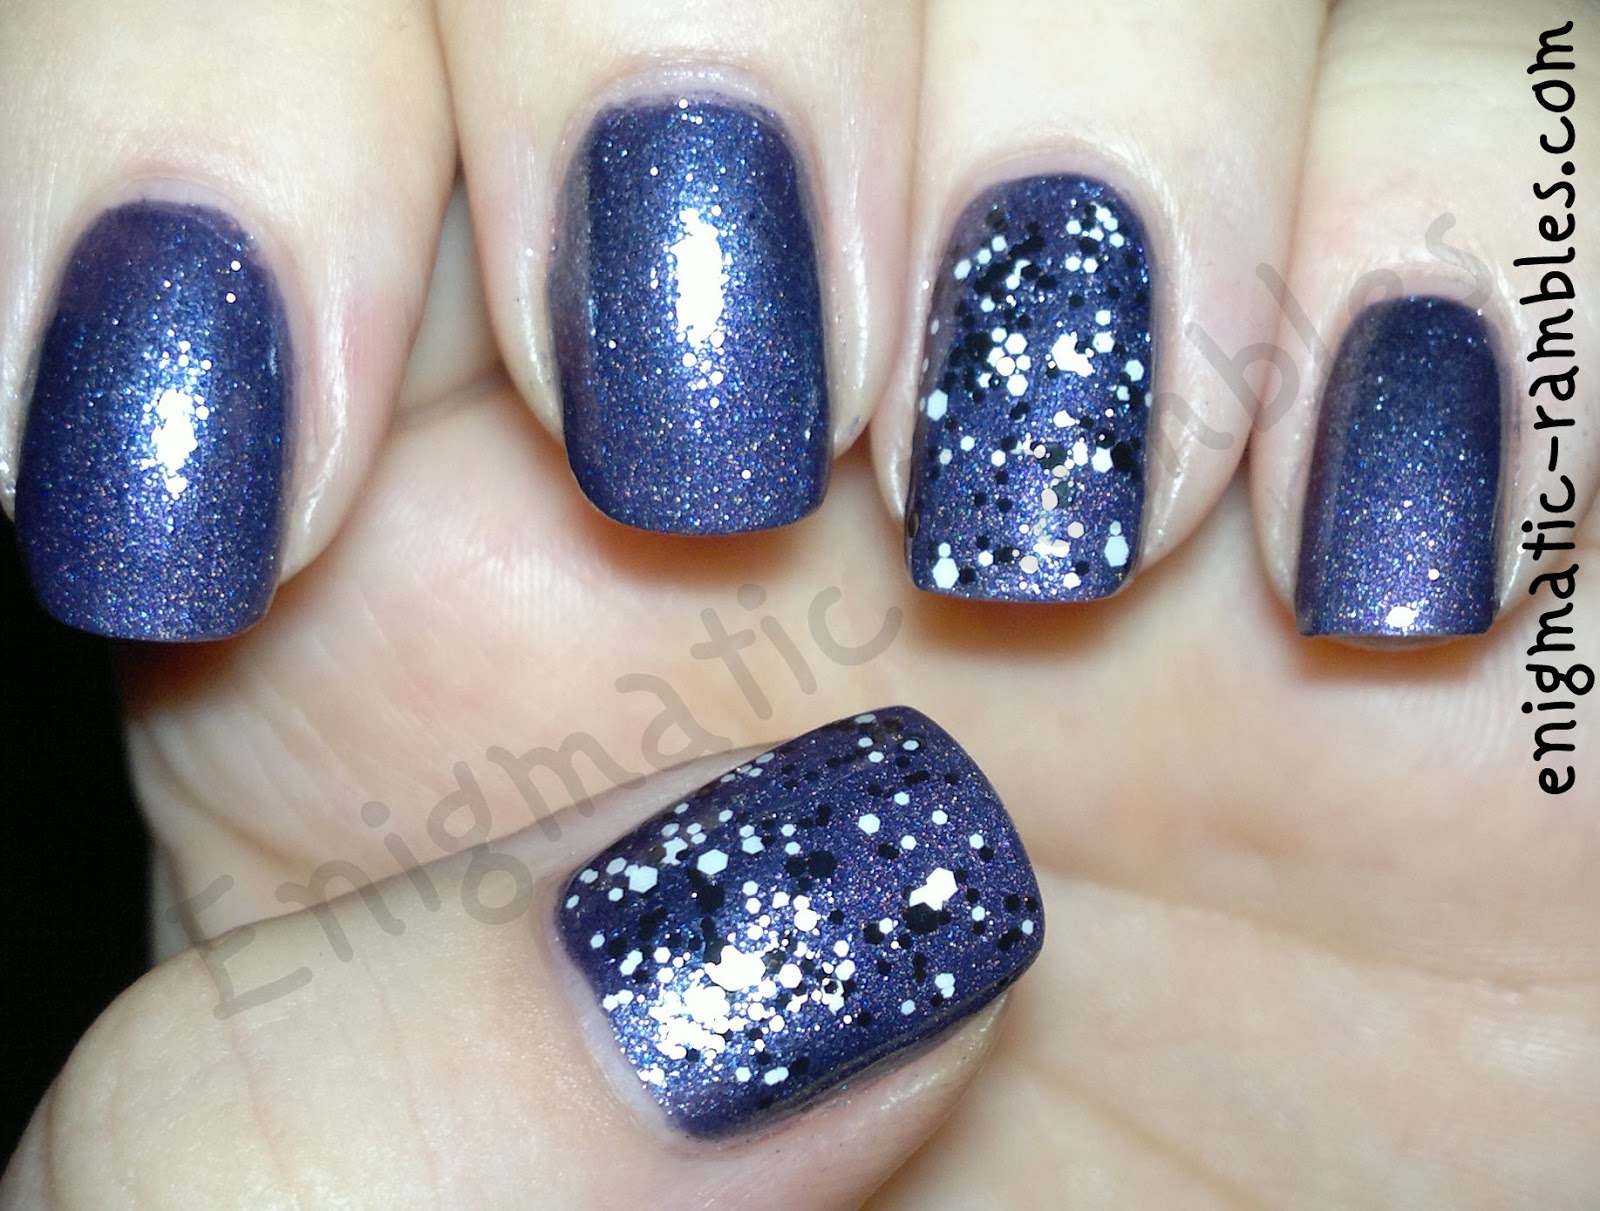 glossy-confetti-l'oreal-top-coat-max-factor-meteorite-41-a-england-lady-of-the-lake